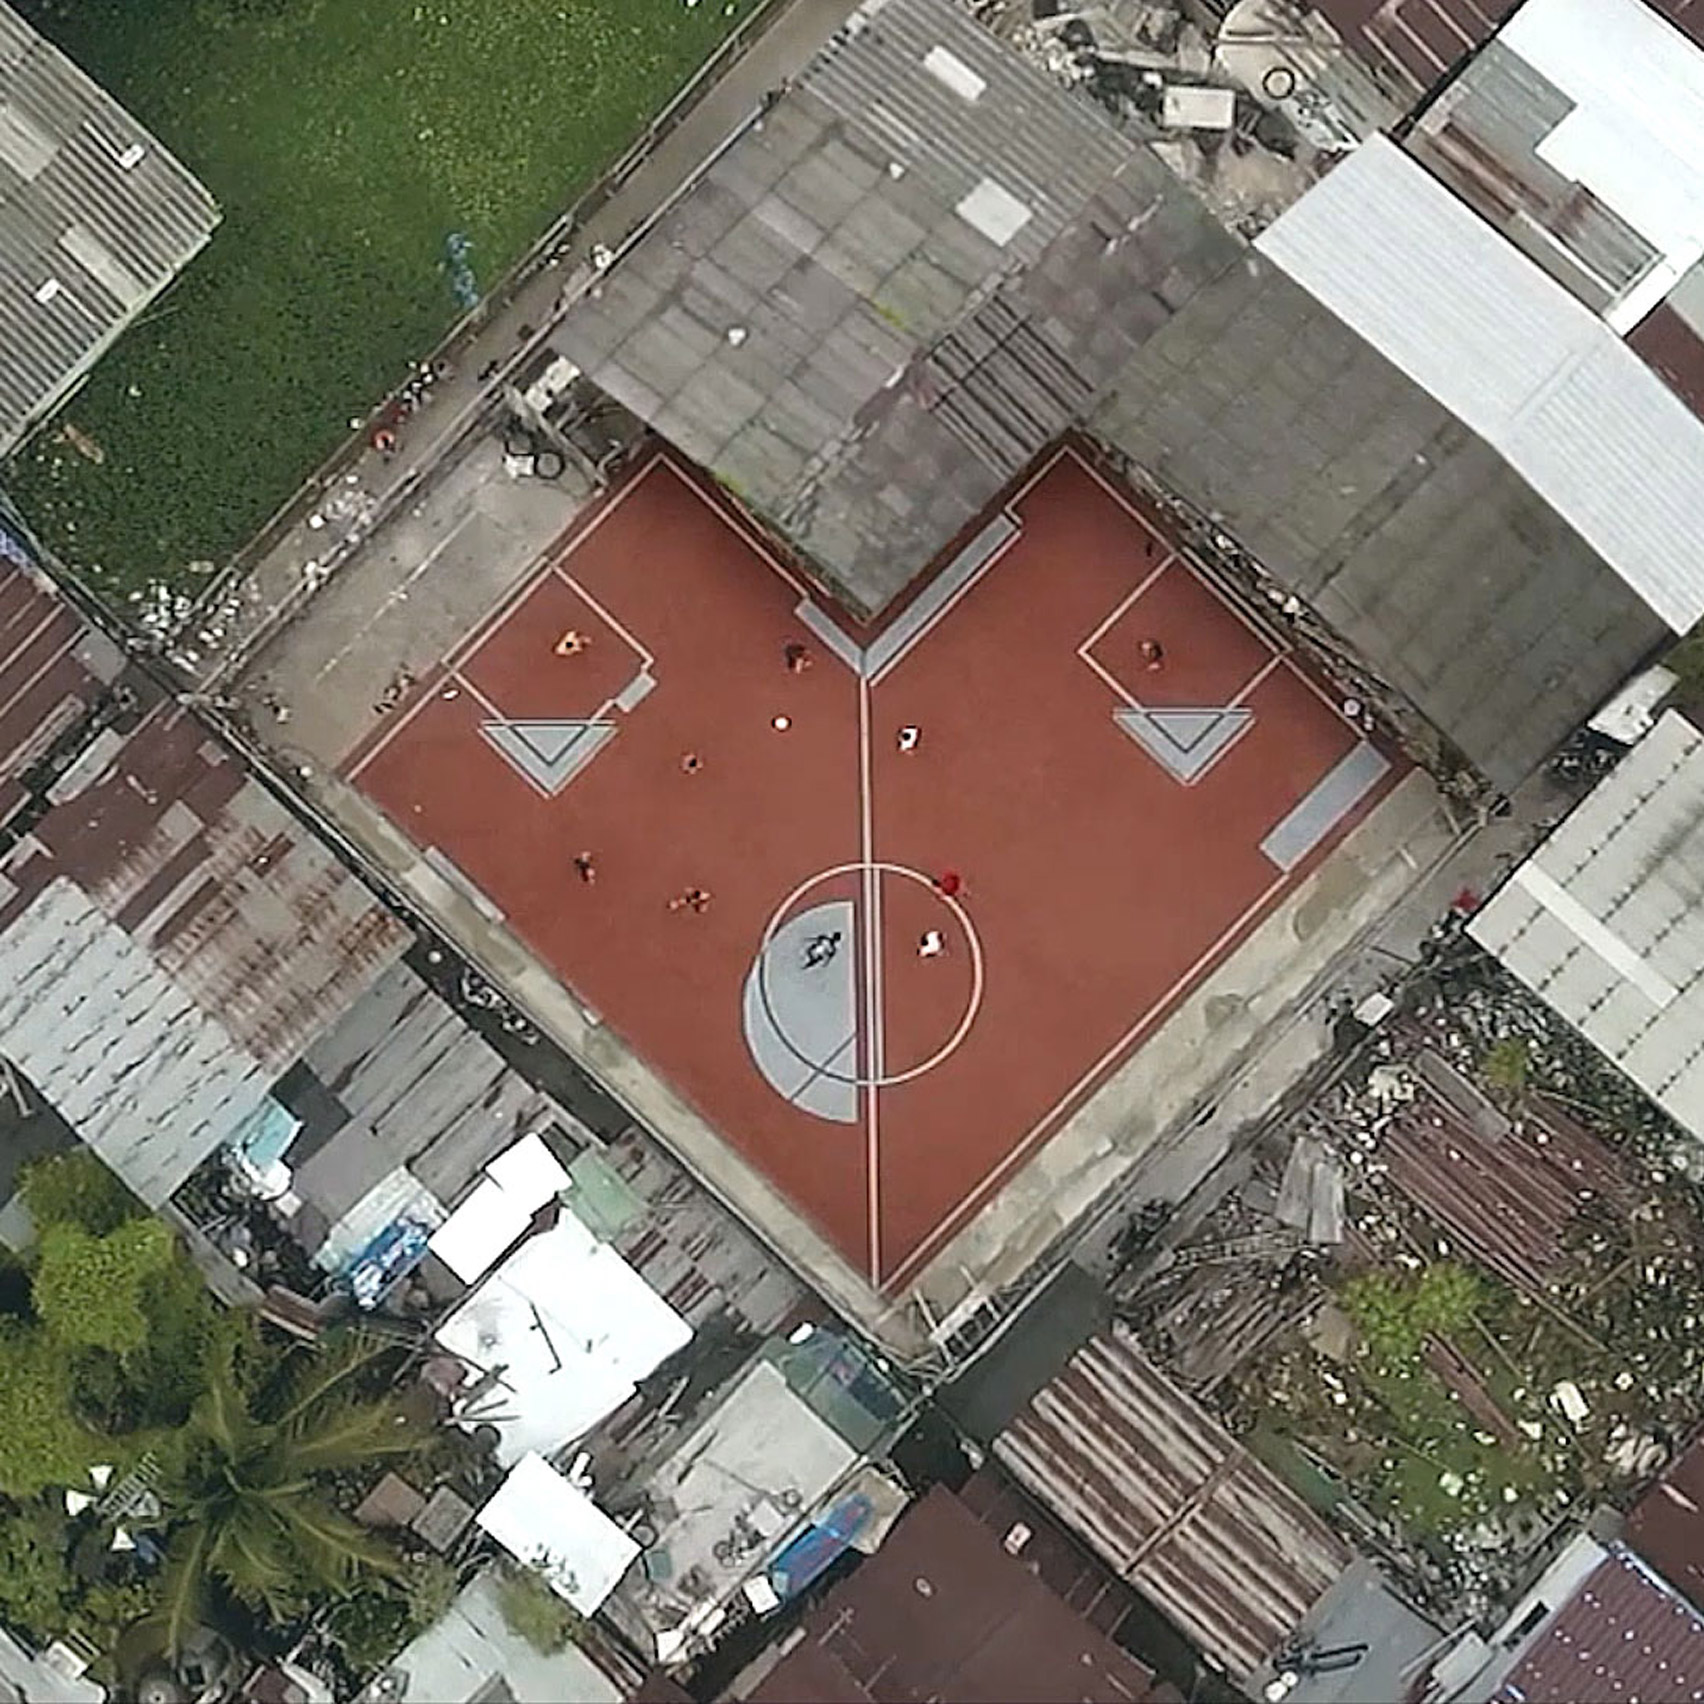 non rectangular football pitches created in bangkok slum